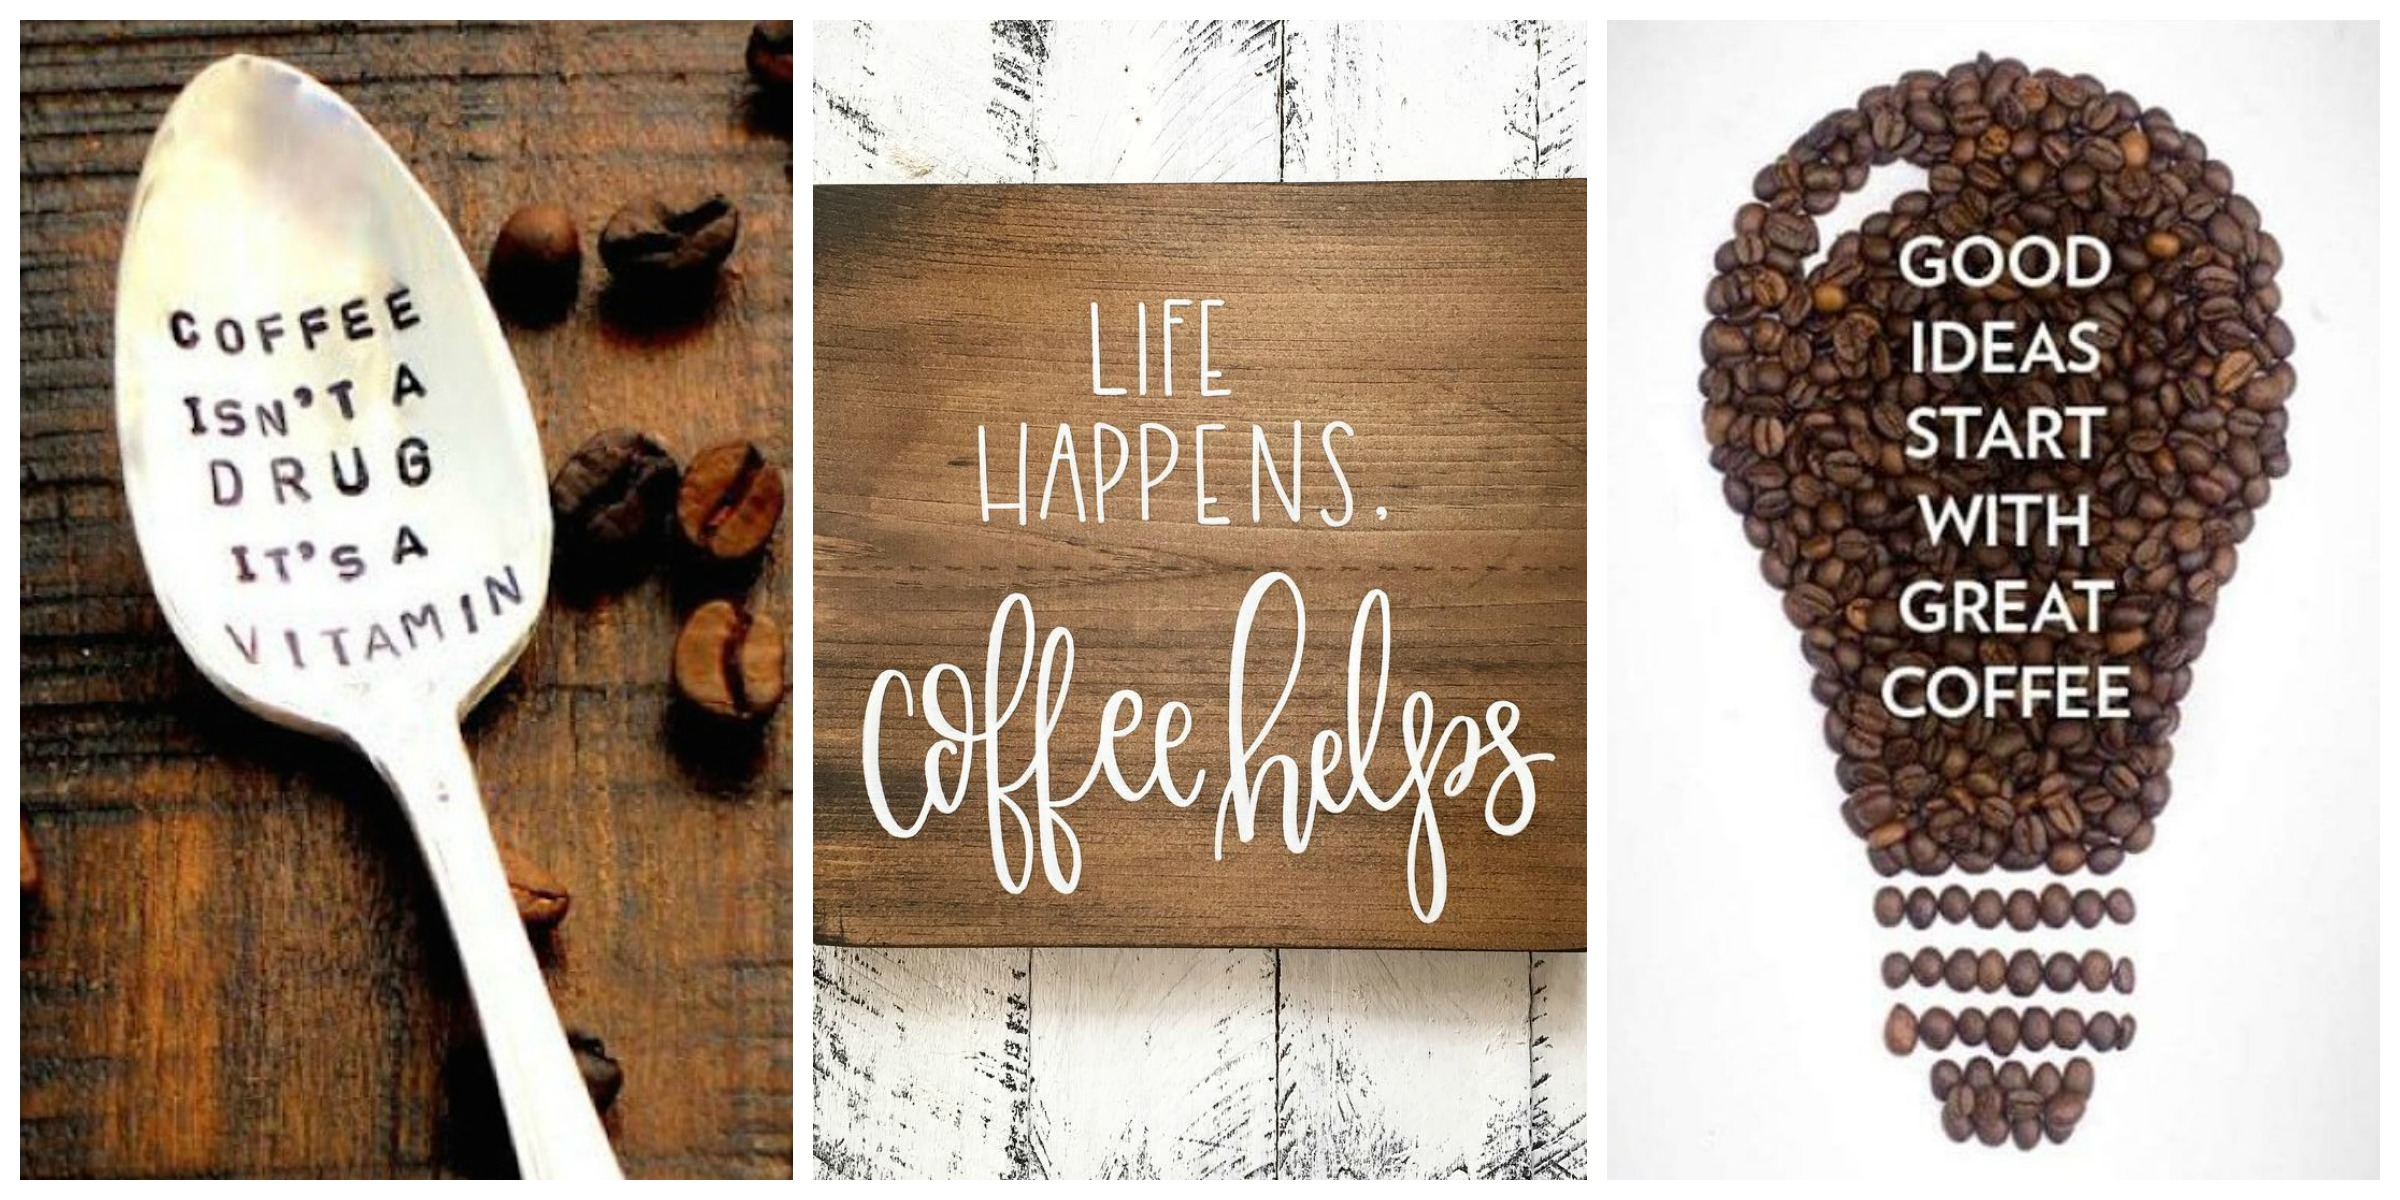 Coffee Quotes: 10 Coffee Quotes We All Know To Be True